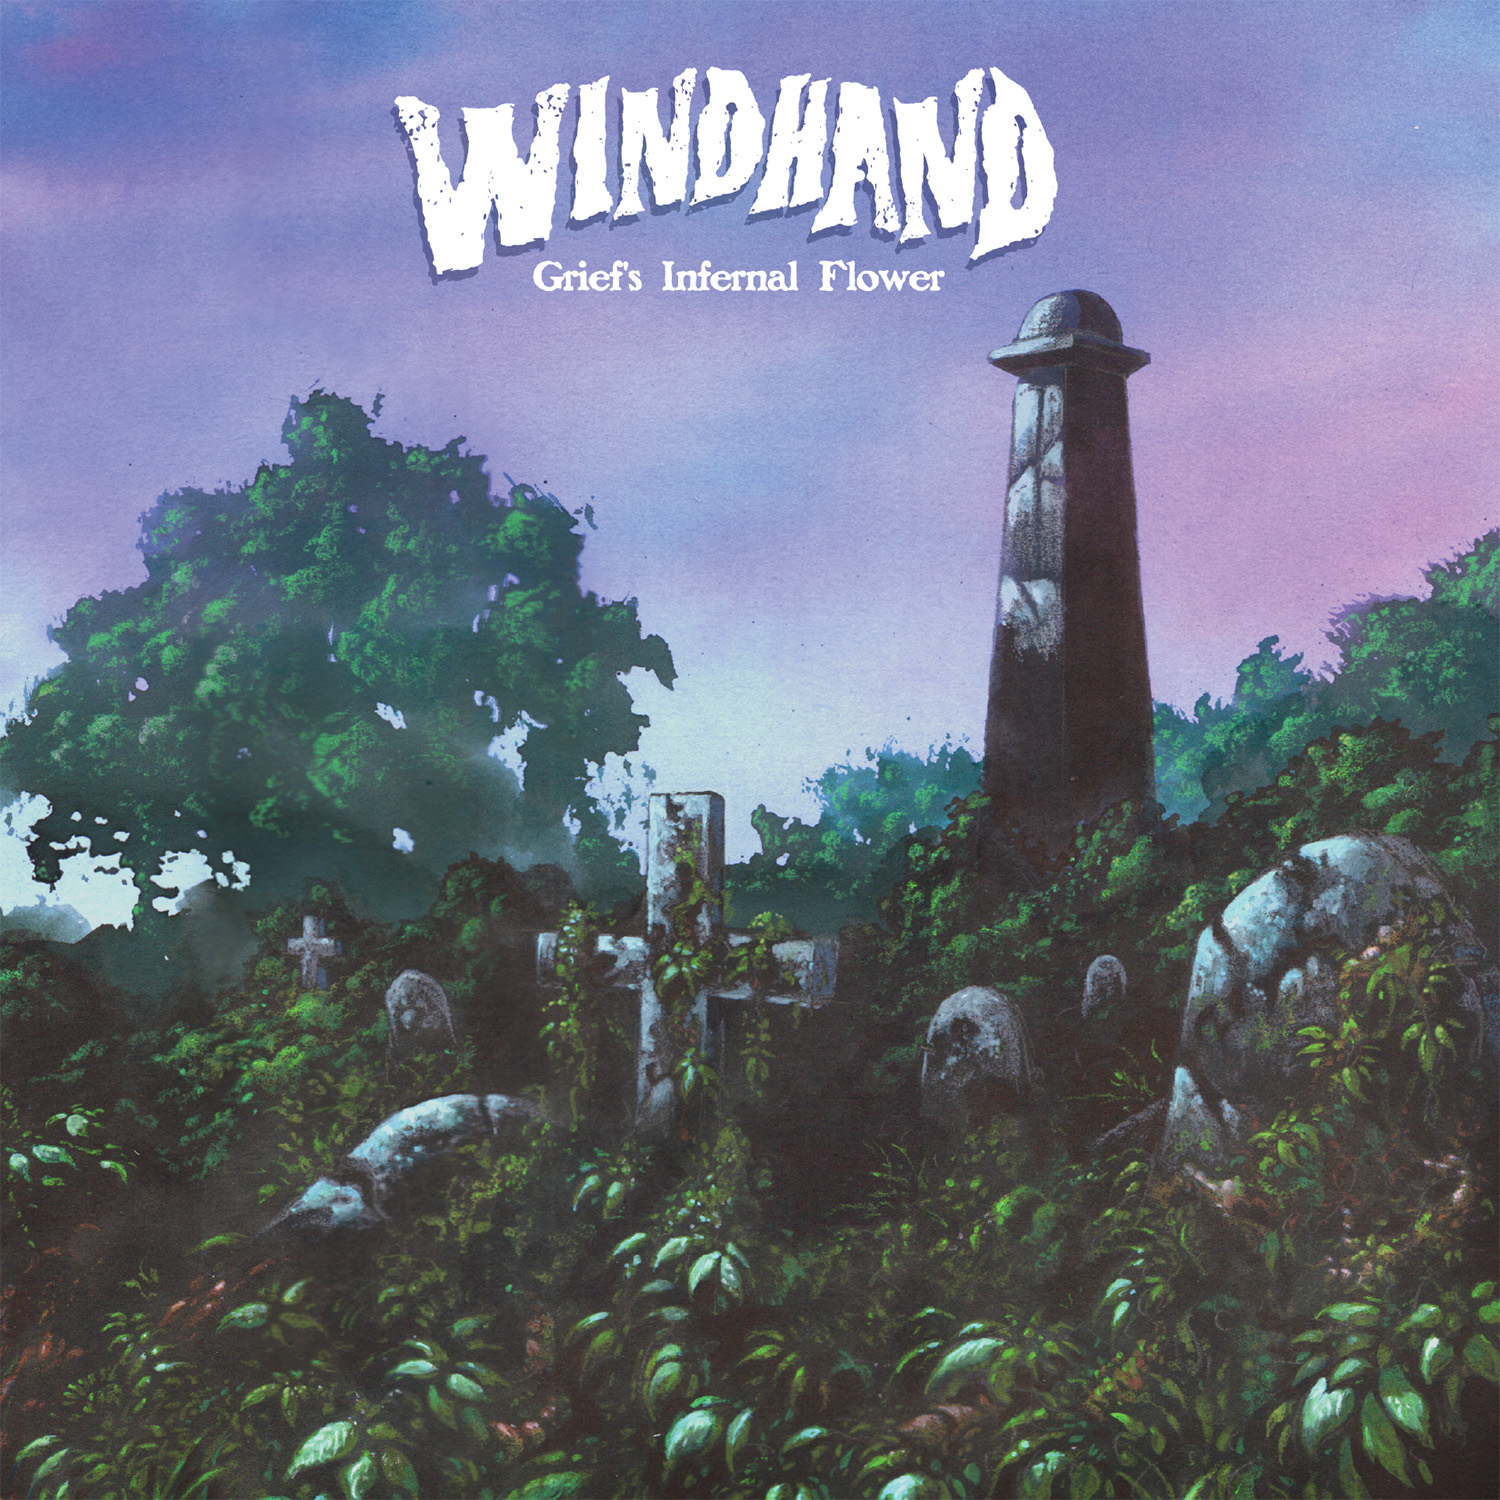 Windhand – Grief's Infernal Flower Review